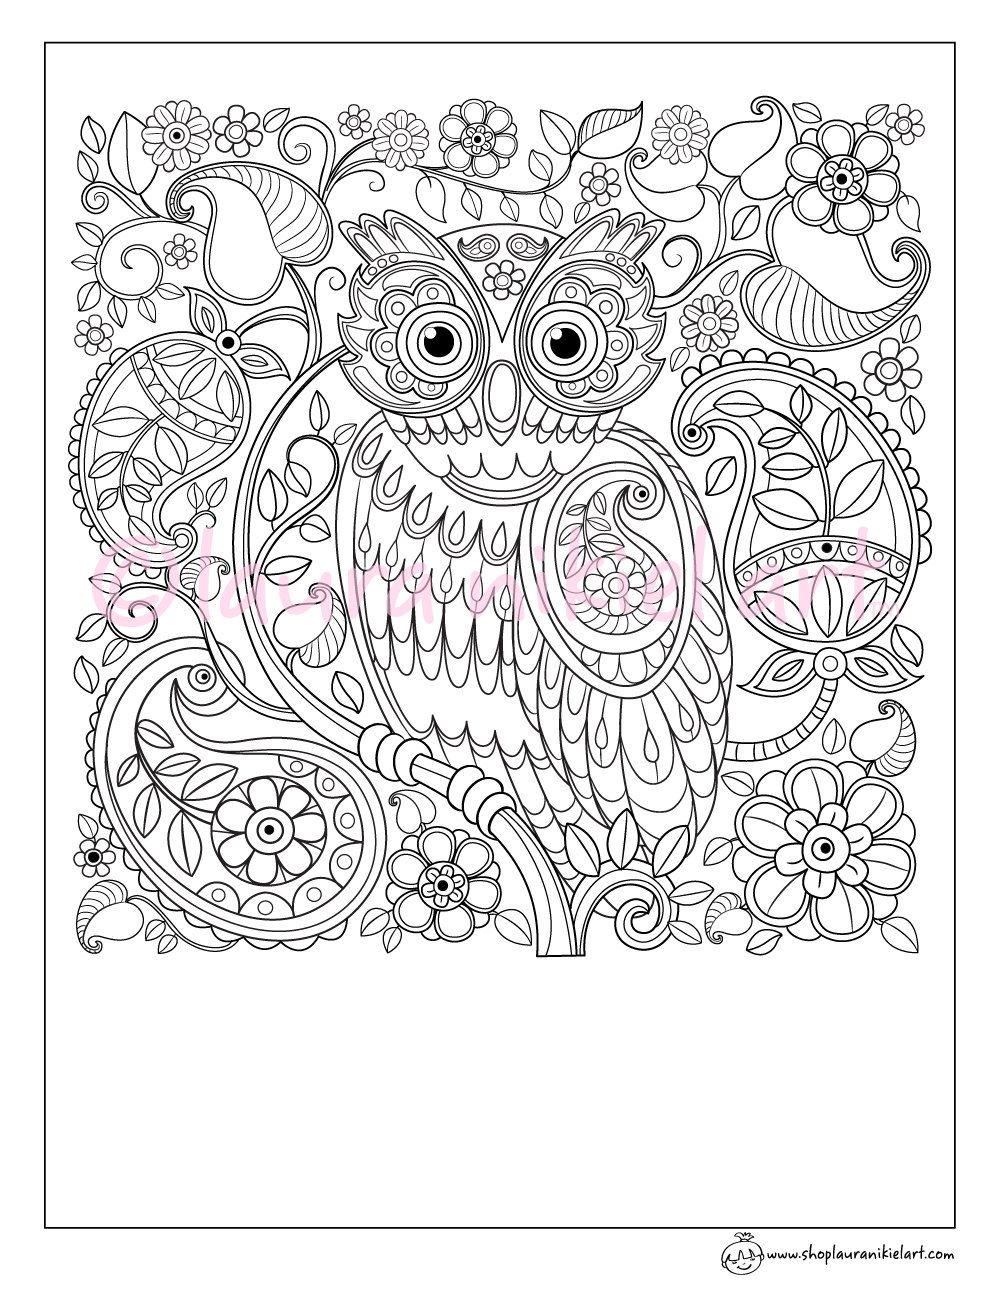 Cute Owl Paisley Pattern Adult Coloring Page - Coloring ...